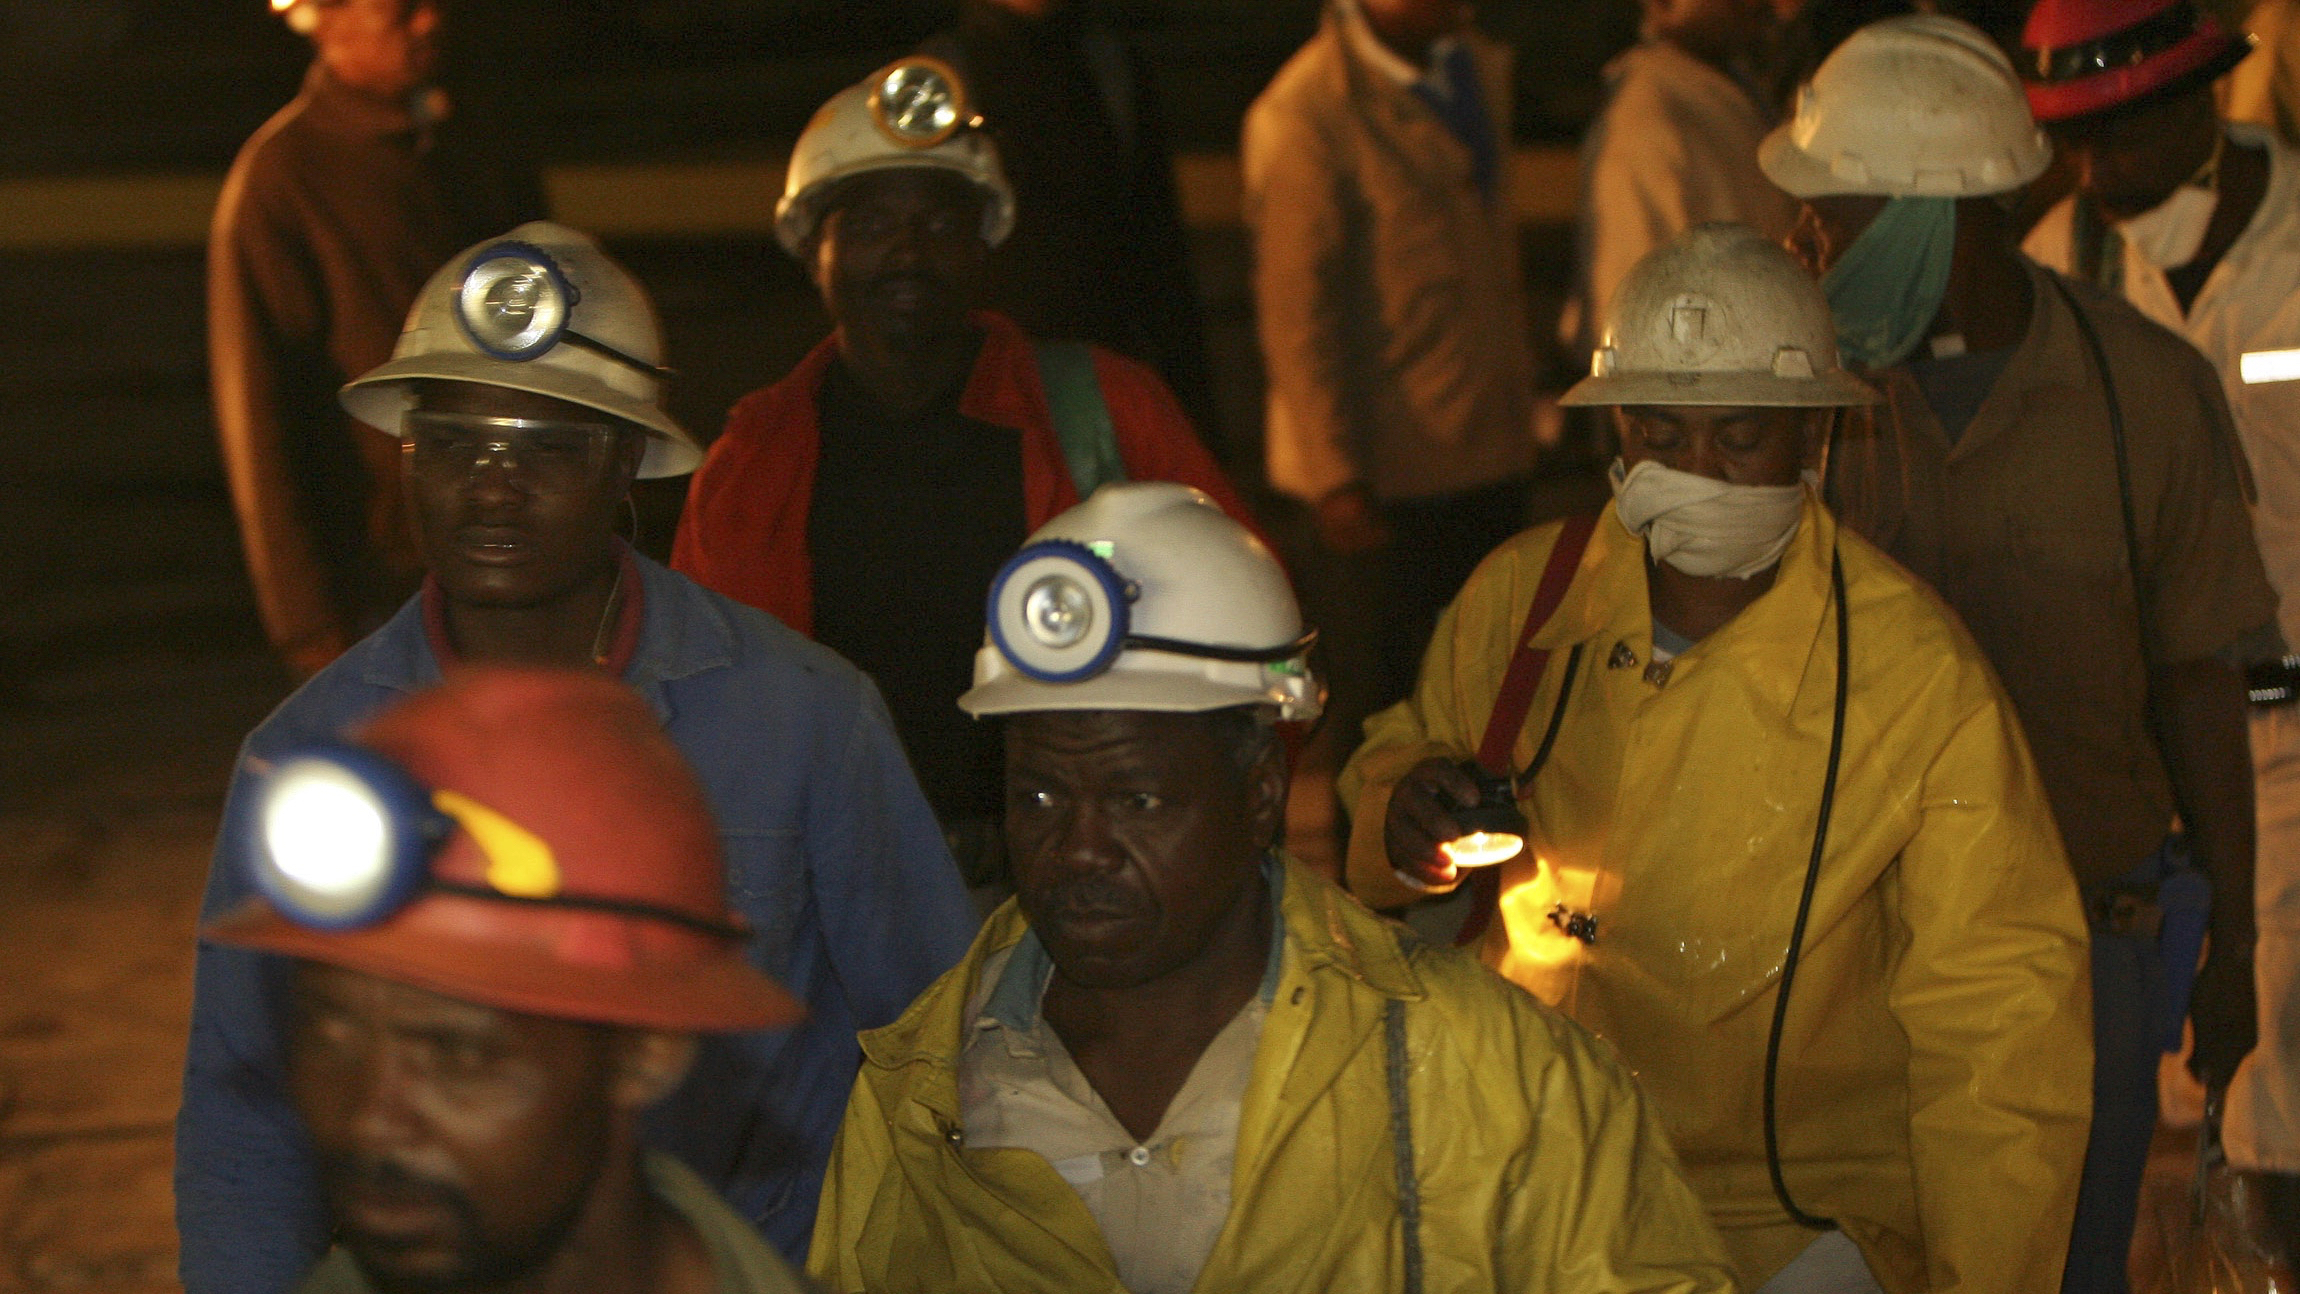 Harmony Gold miners appear on the surface after being trapped underground for more than 10 hours at a mine in Carltonville, west of Johannesburg, October 4, 2007. Rescue teams brought the first 450 miners out of 3,200 trapped underground in a South African gold mine to the surface early on Thursday, mine and union officials said. REUTERS/Siphiwe Sibeko  (SOUTH AFRICA) - RTR1UK5C